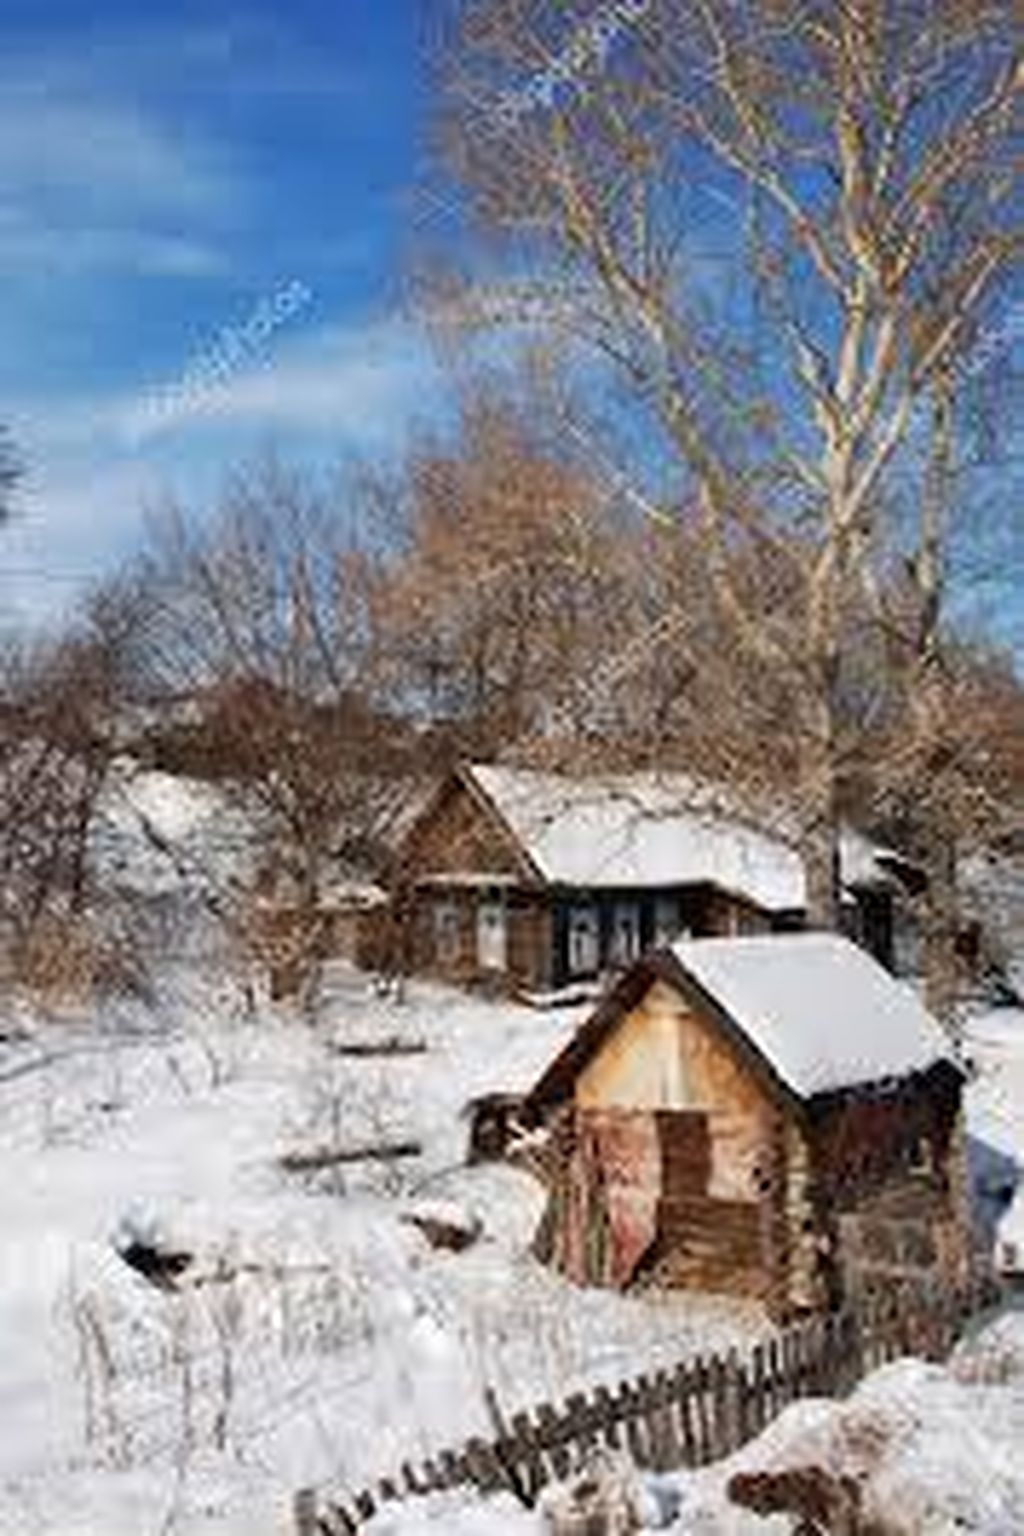 Cool Bathhouse Winter Camp Design Ideas With Rural Accents To Have Right Now 16